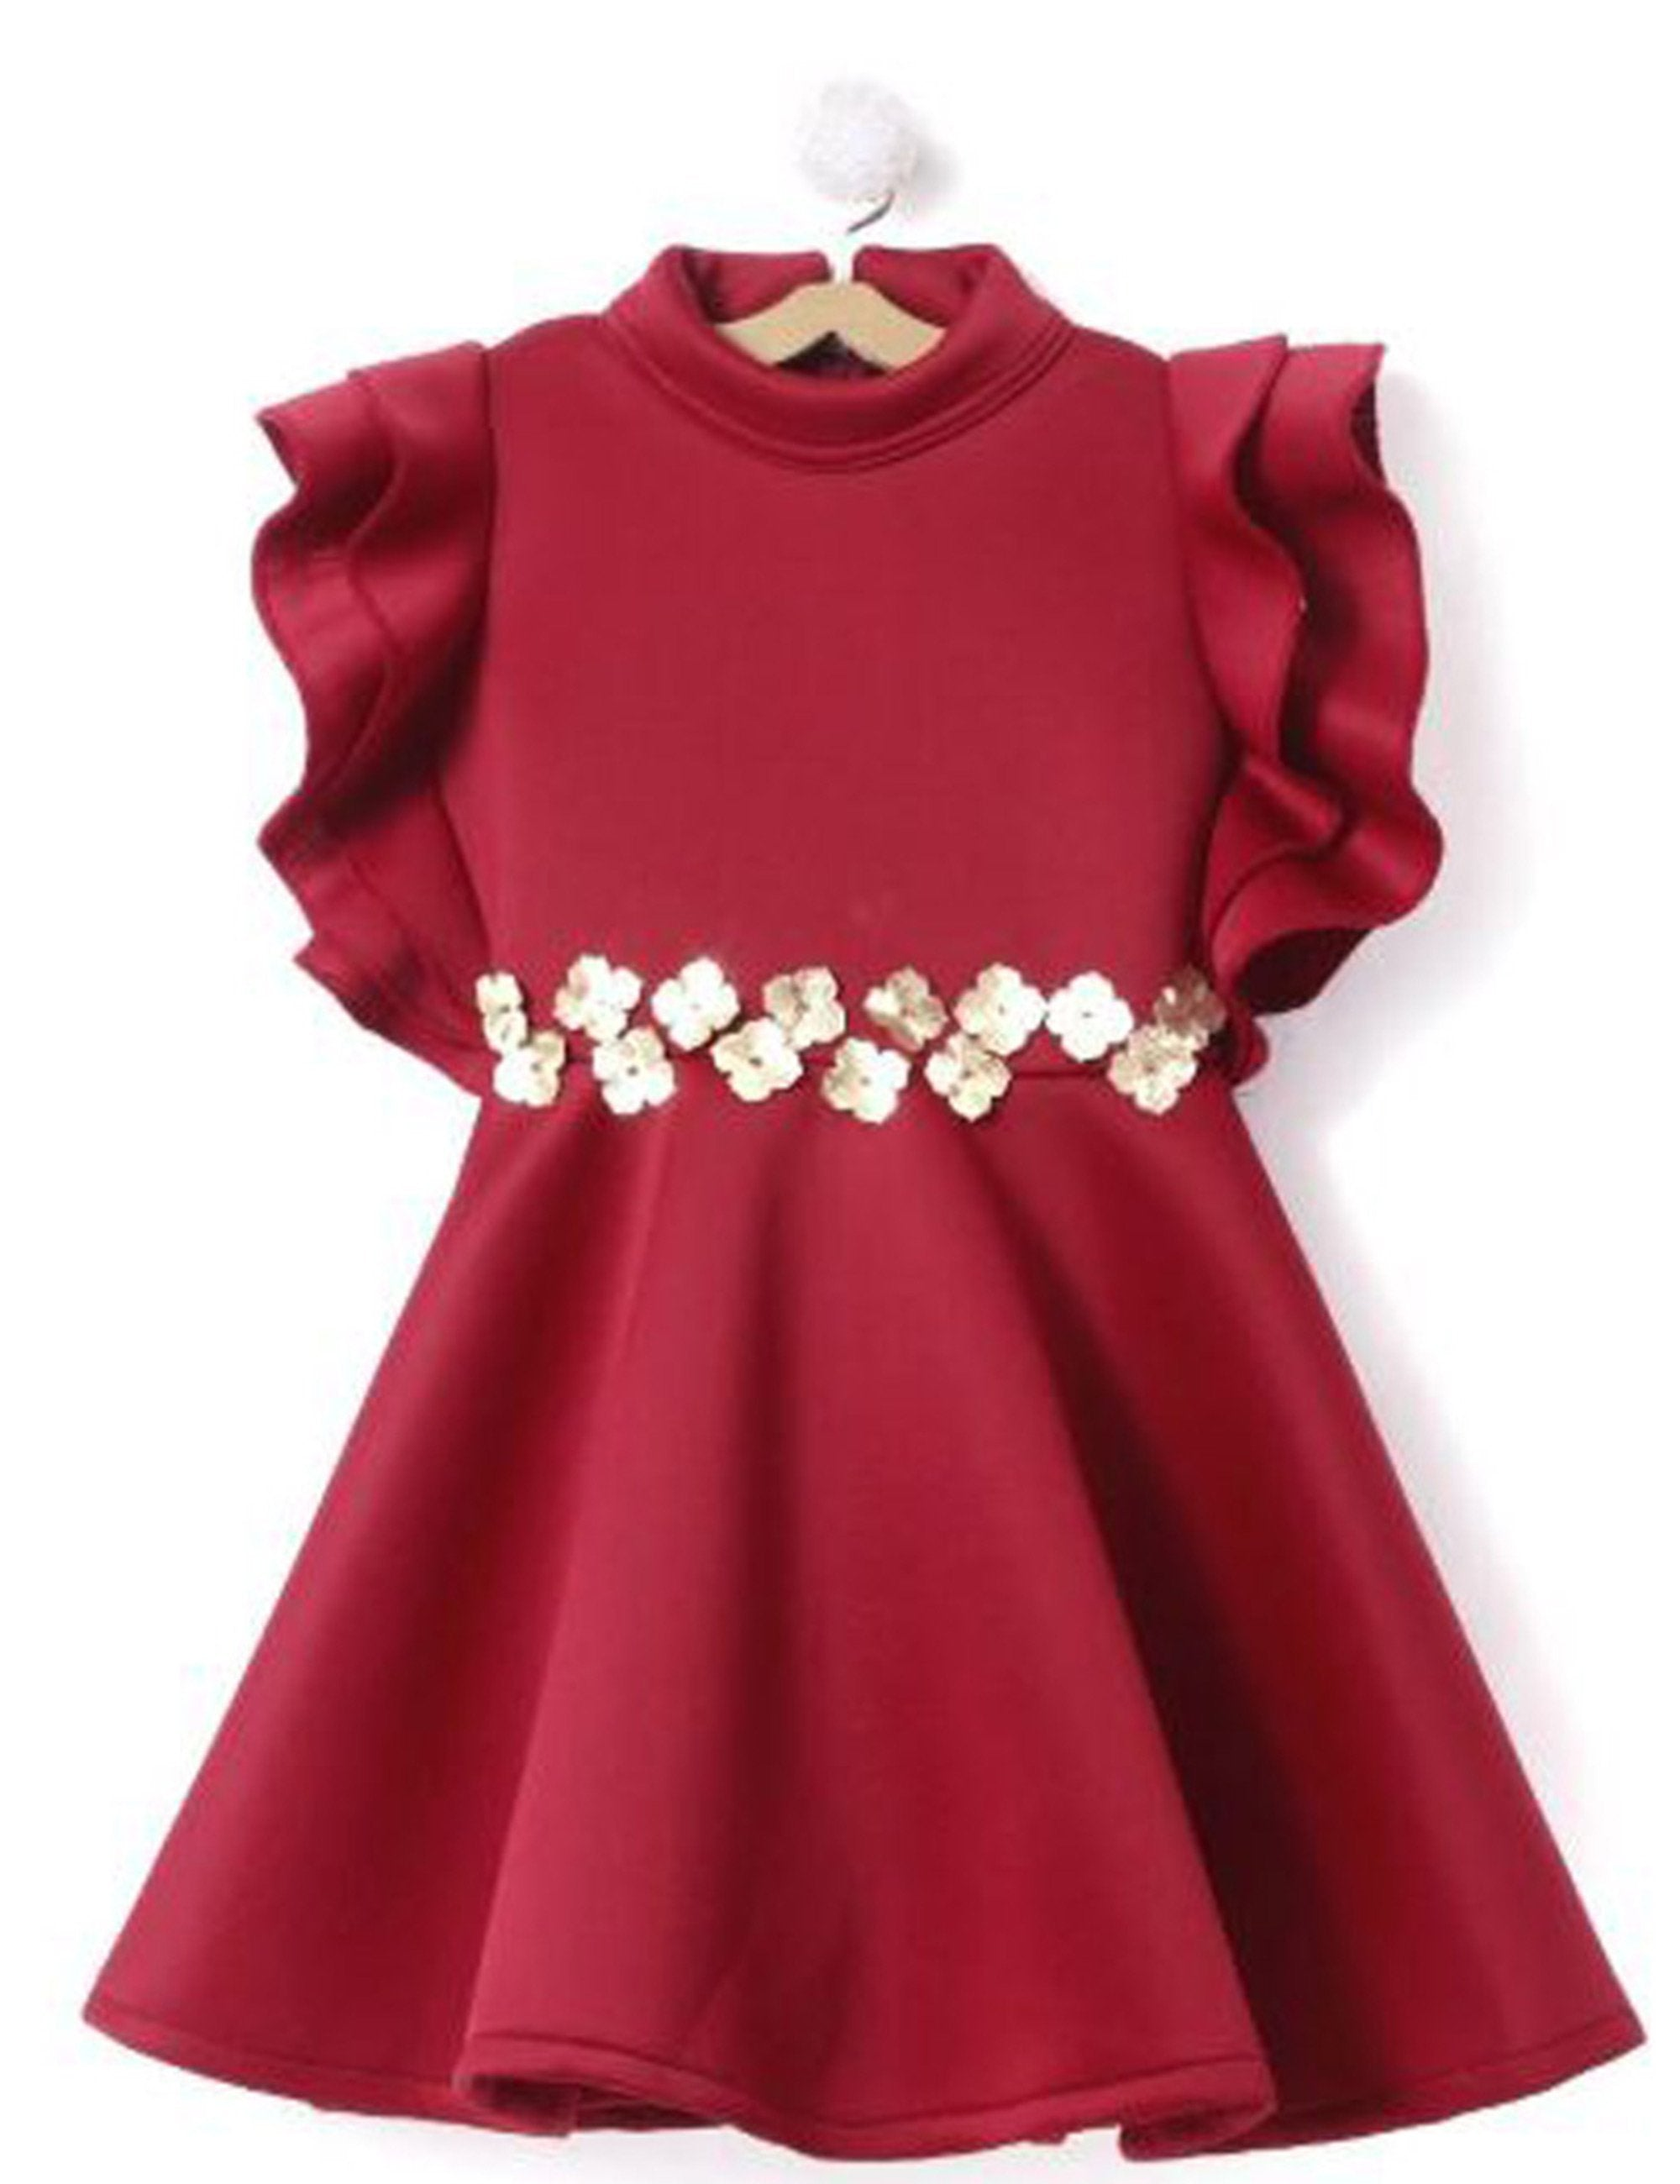 Stylish Wings Sleeves Dress in Maroon